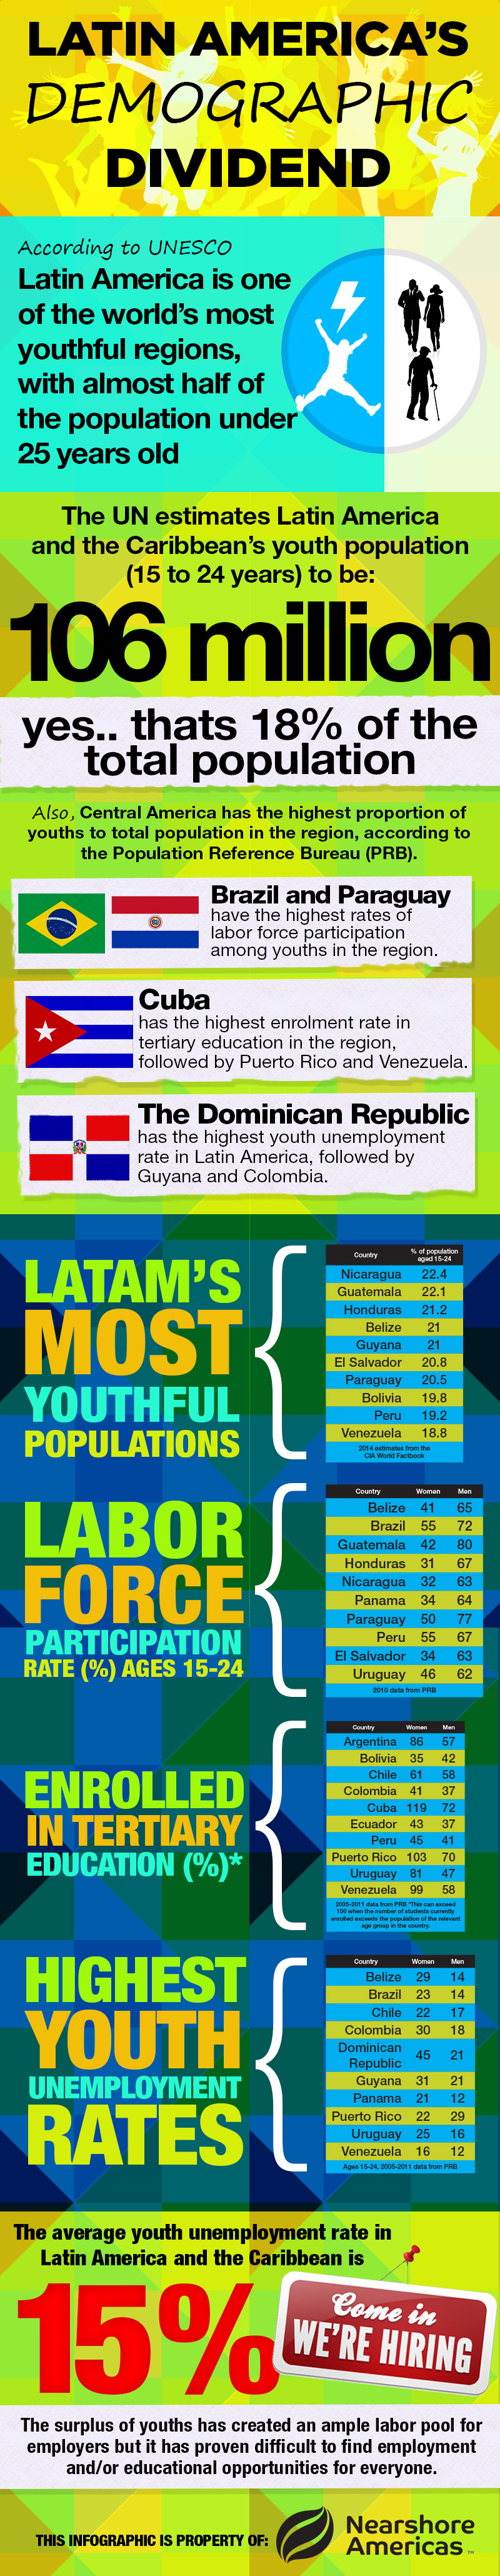 infographic la demographic dividend Infographic: Latin America's Demographic Dividend